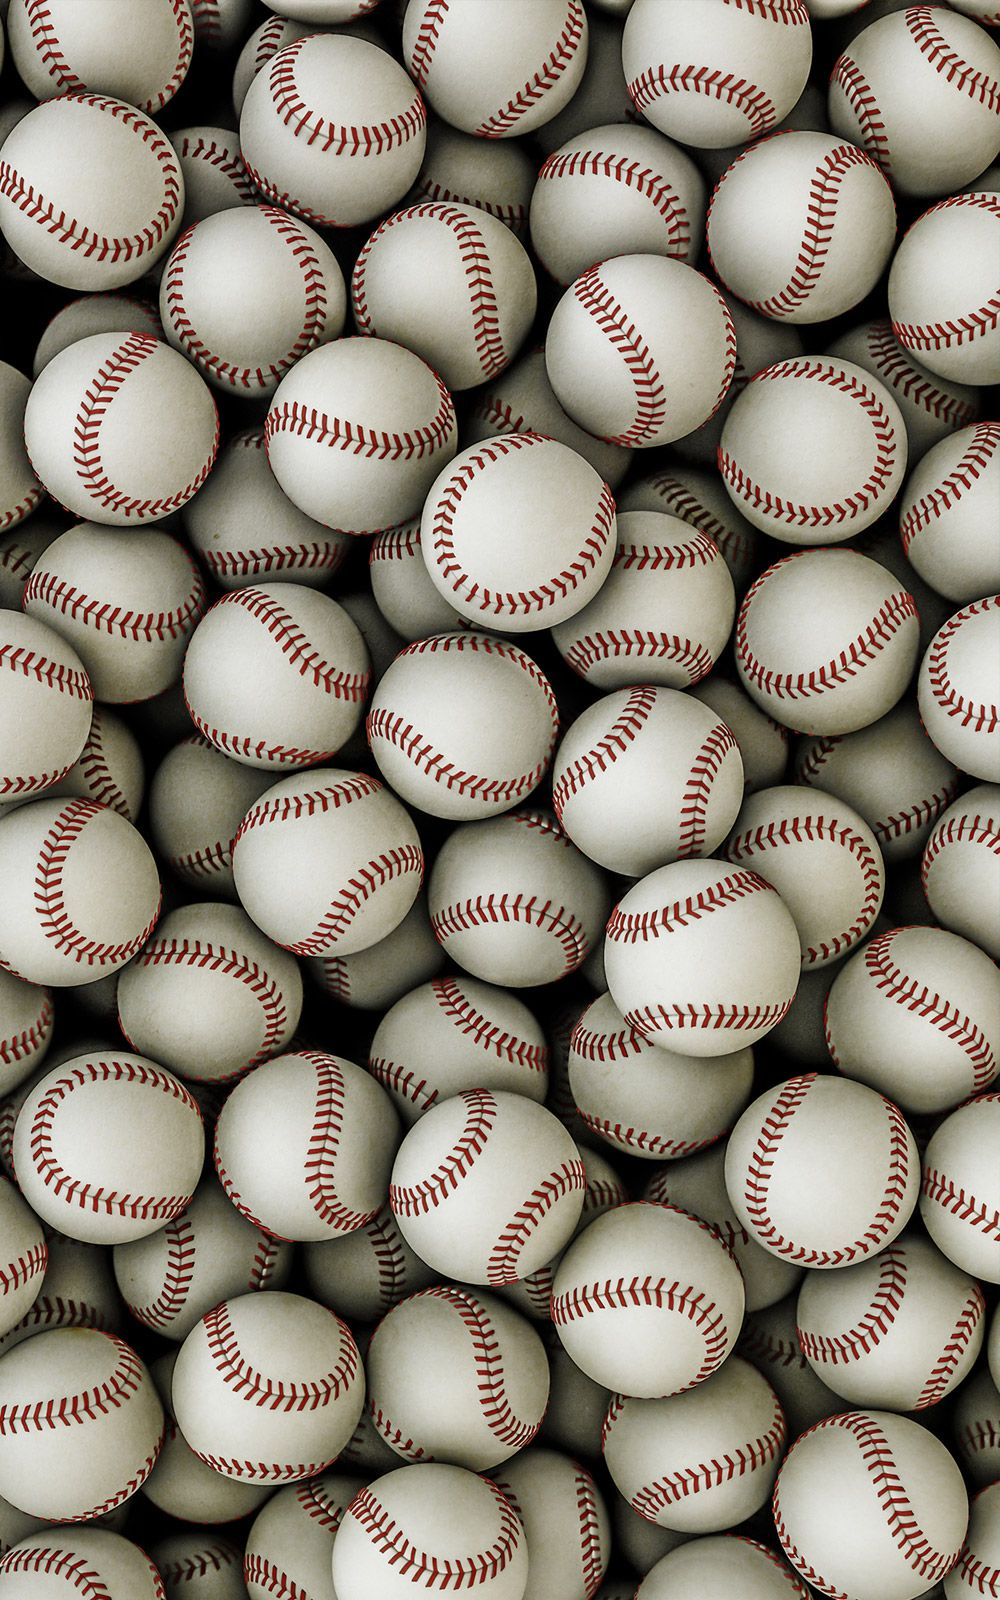 Iphone Baseball Wallpapers Top Free Iphone Baseball Backgrounds Wallpaperaccess